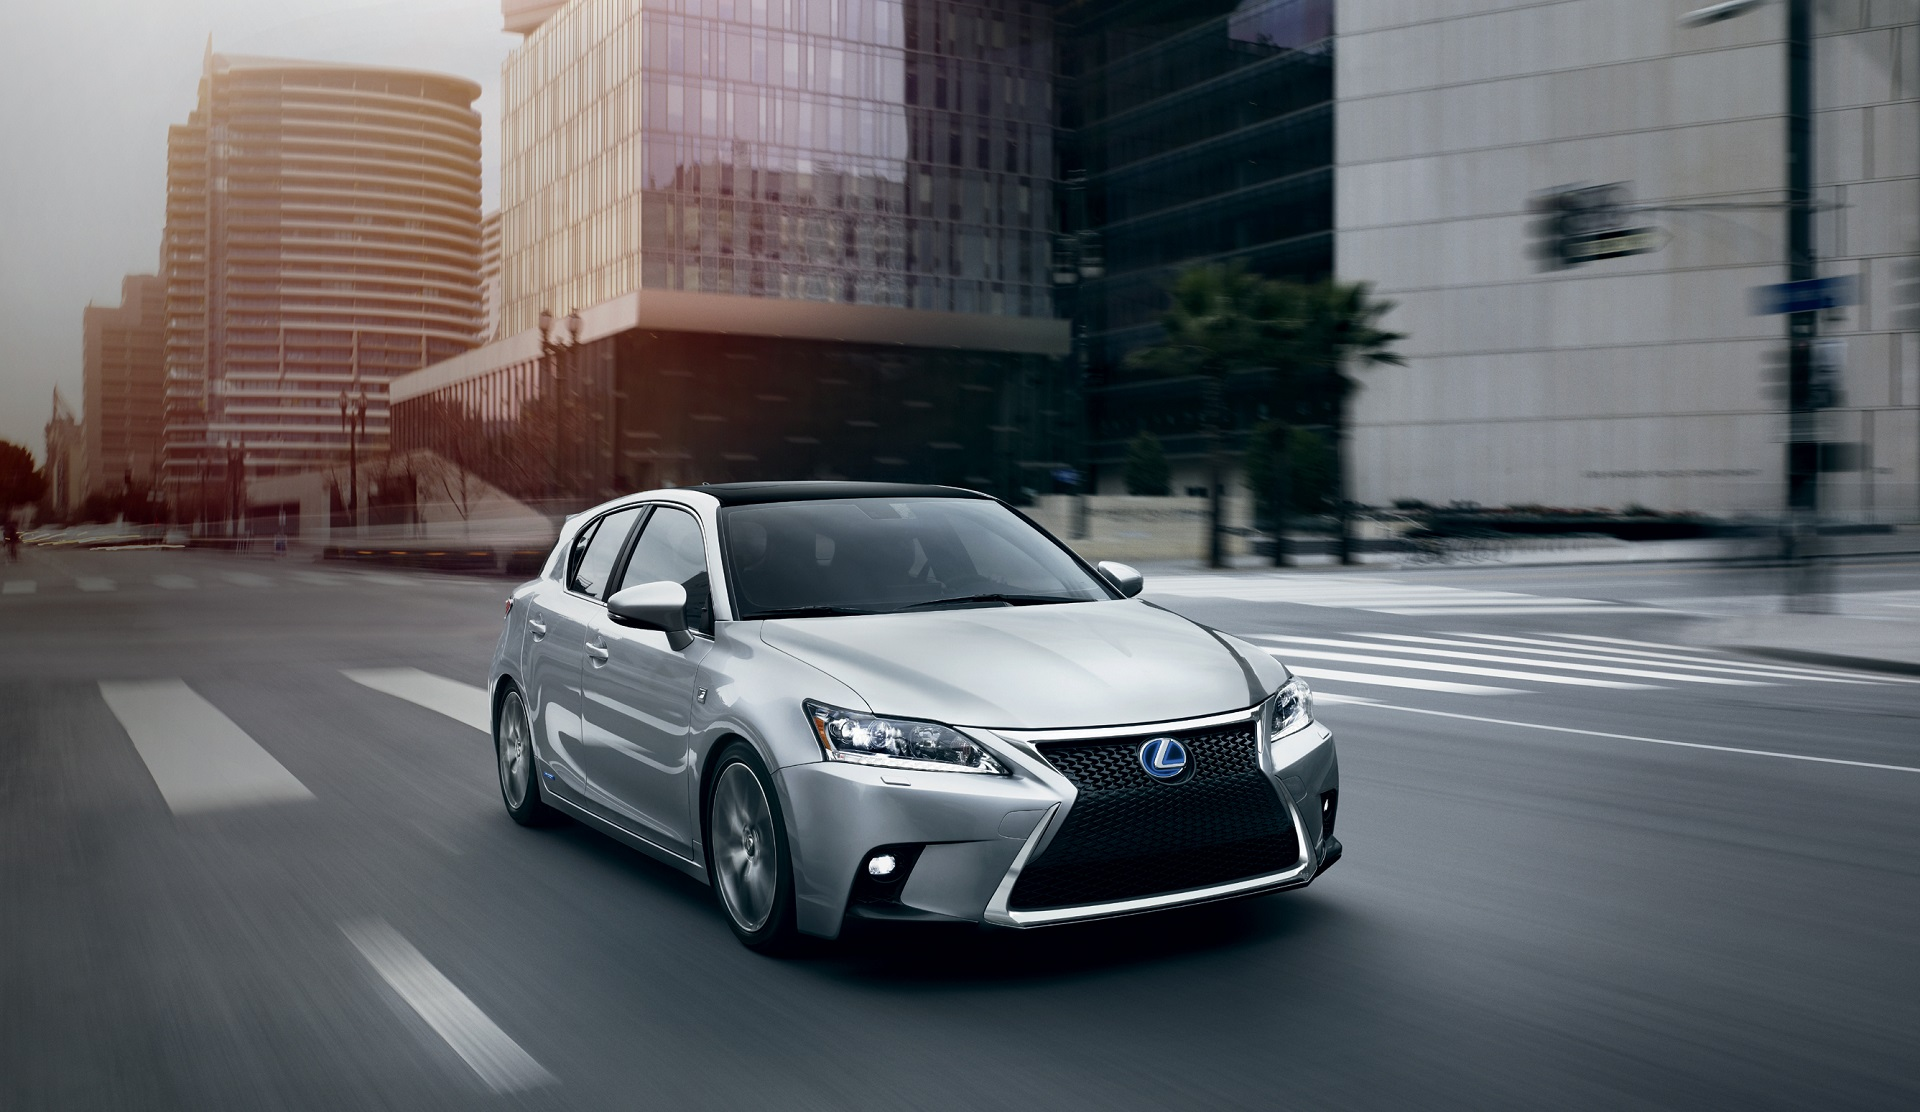 2017 Lexus CT Review Ratings Specs Prices and s The Car